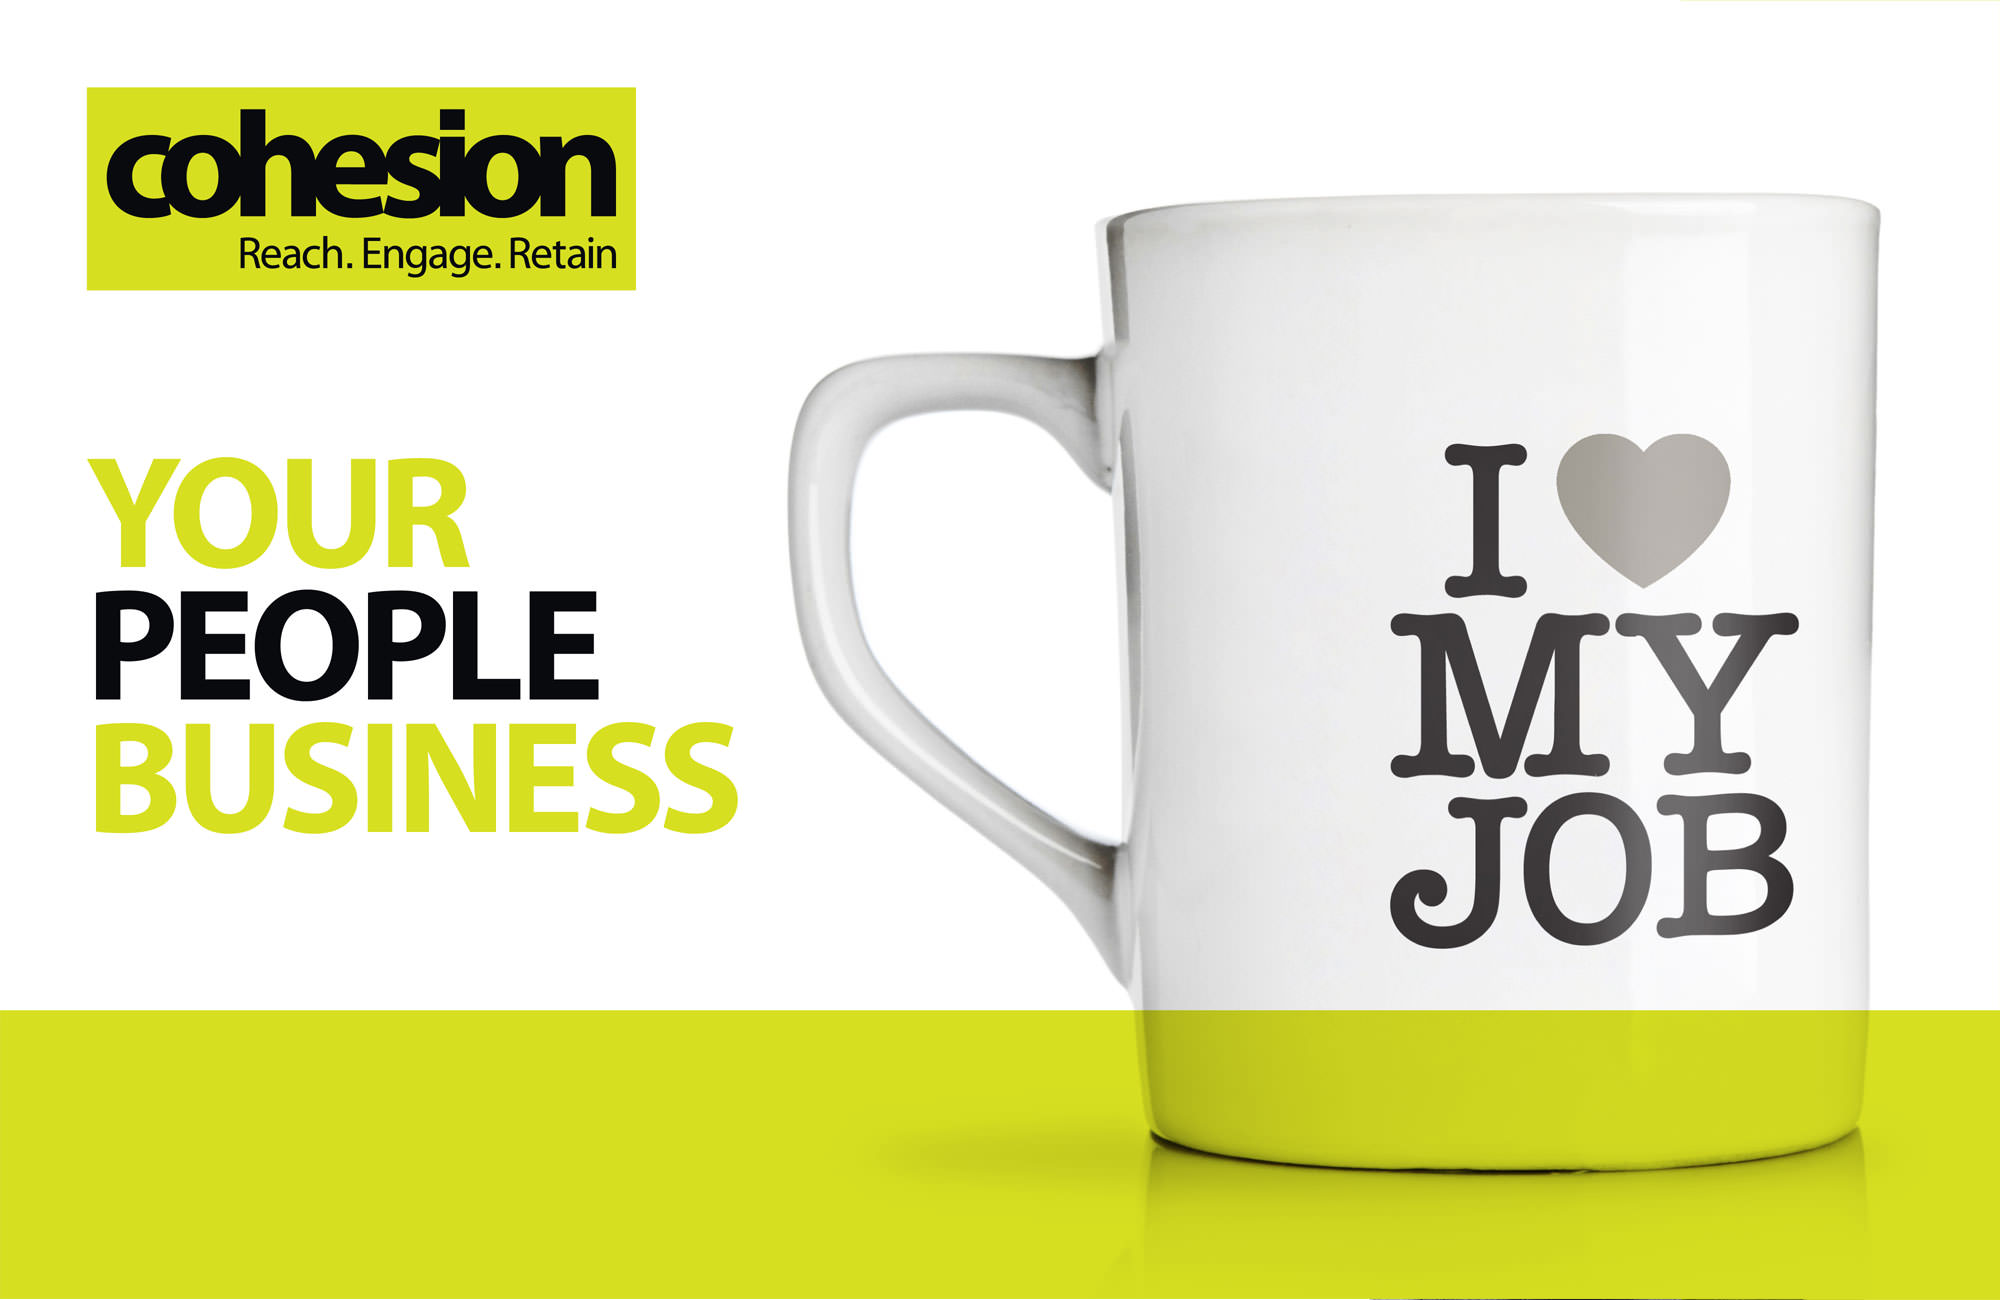 Cohesion. Your People Business